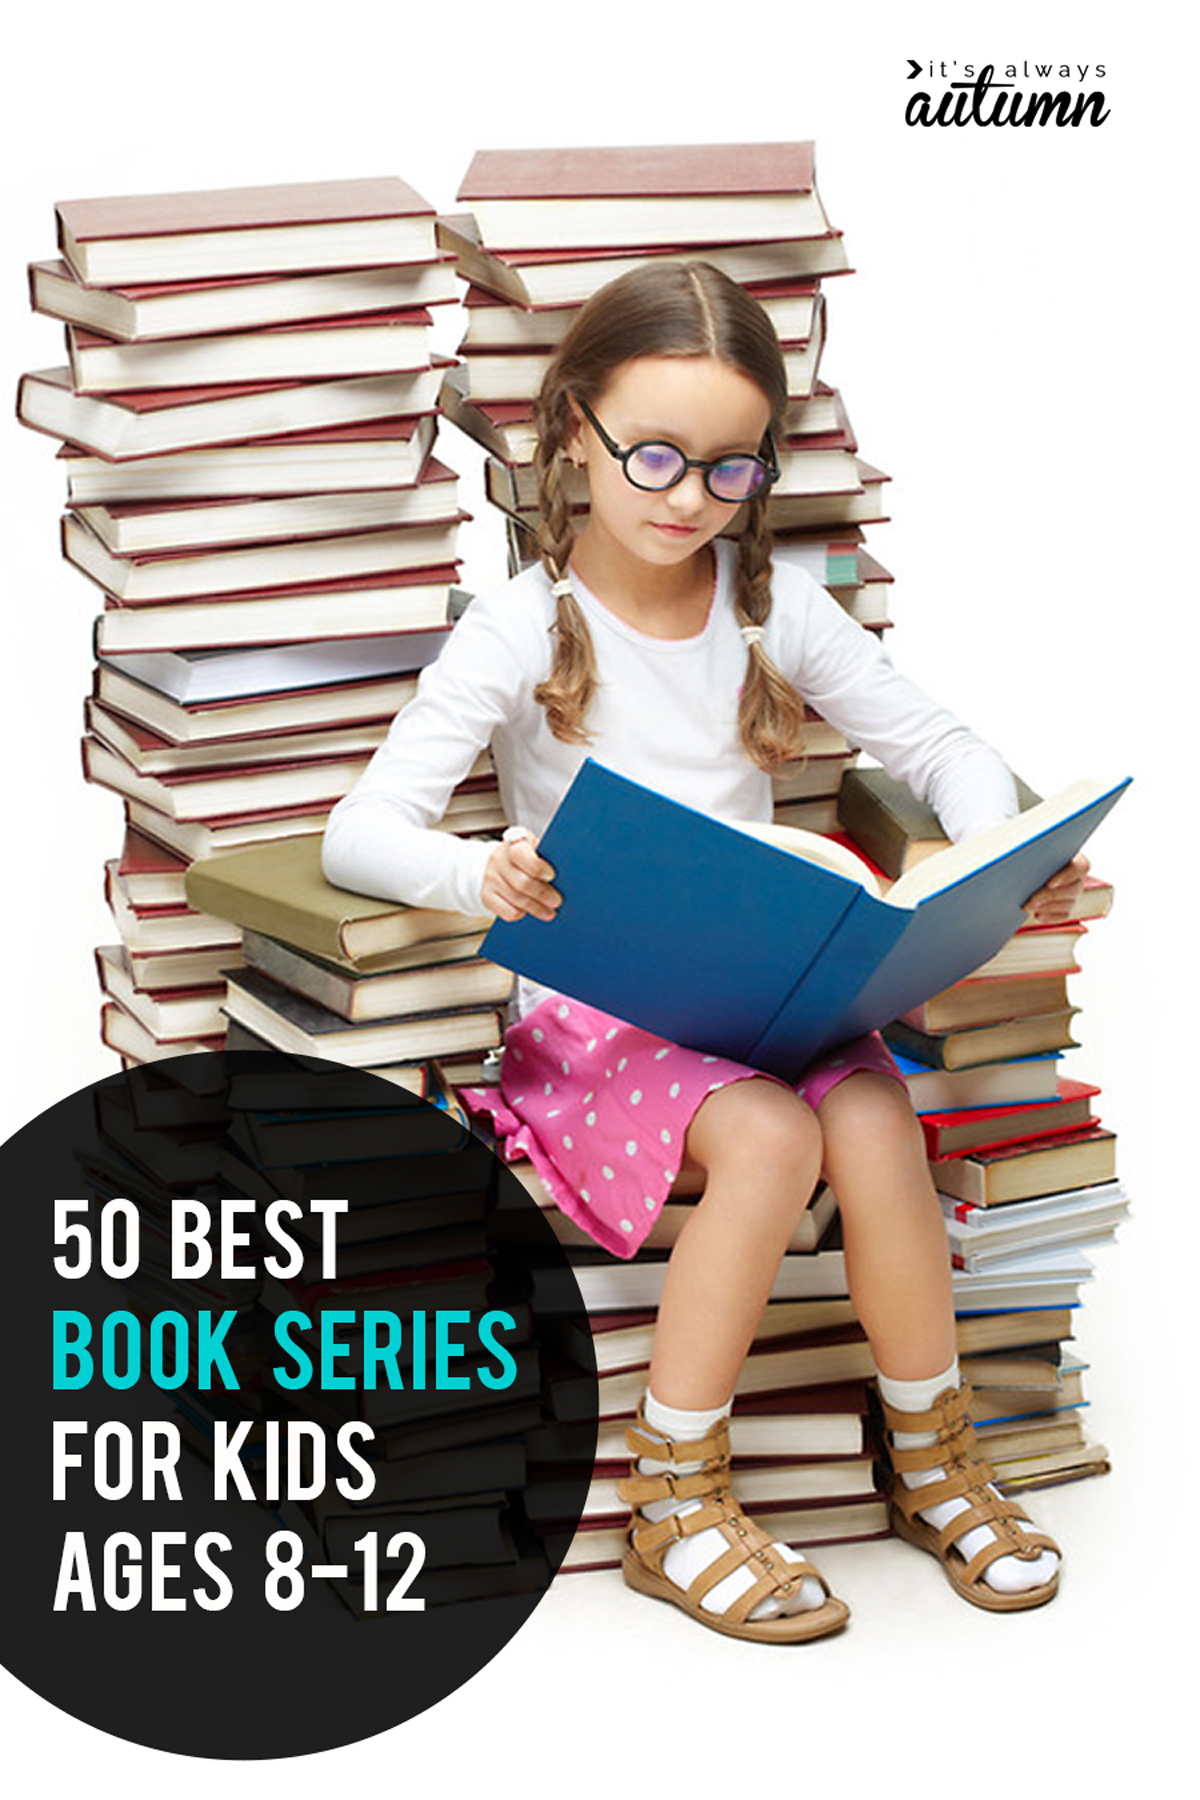 girl sitting on stacks of books reading a book and words: 50 best book series for kids ages 8-12